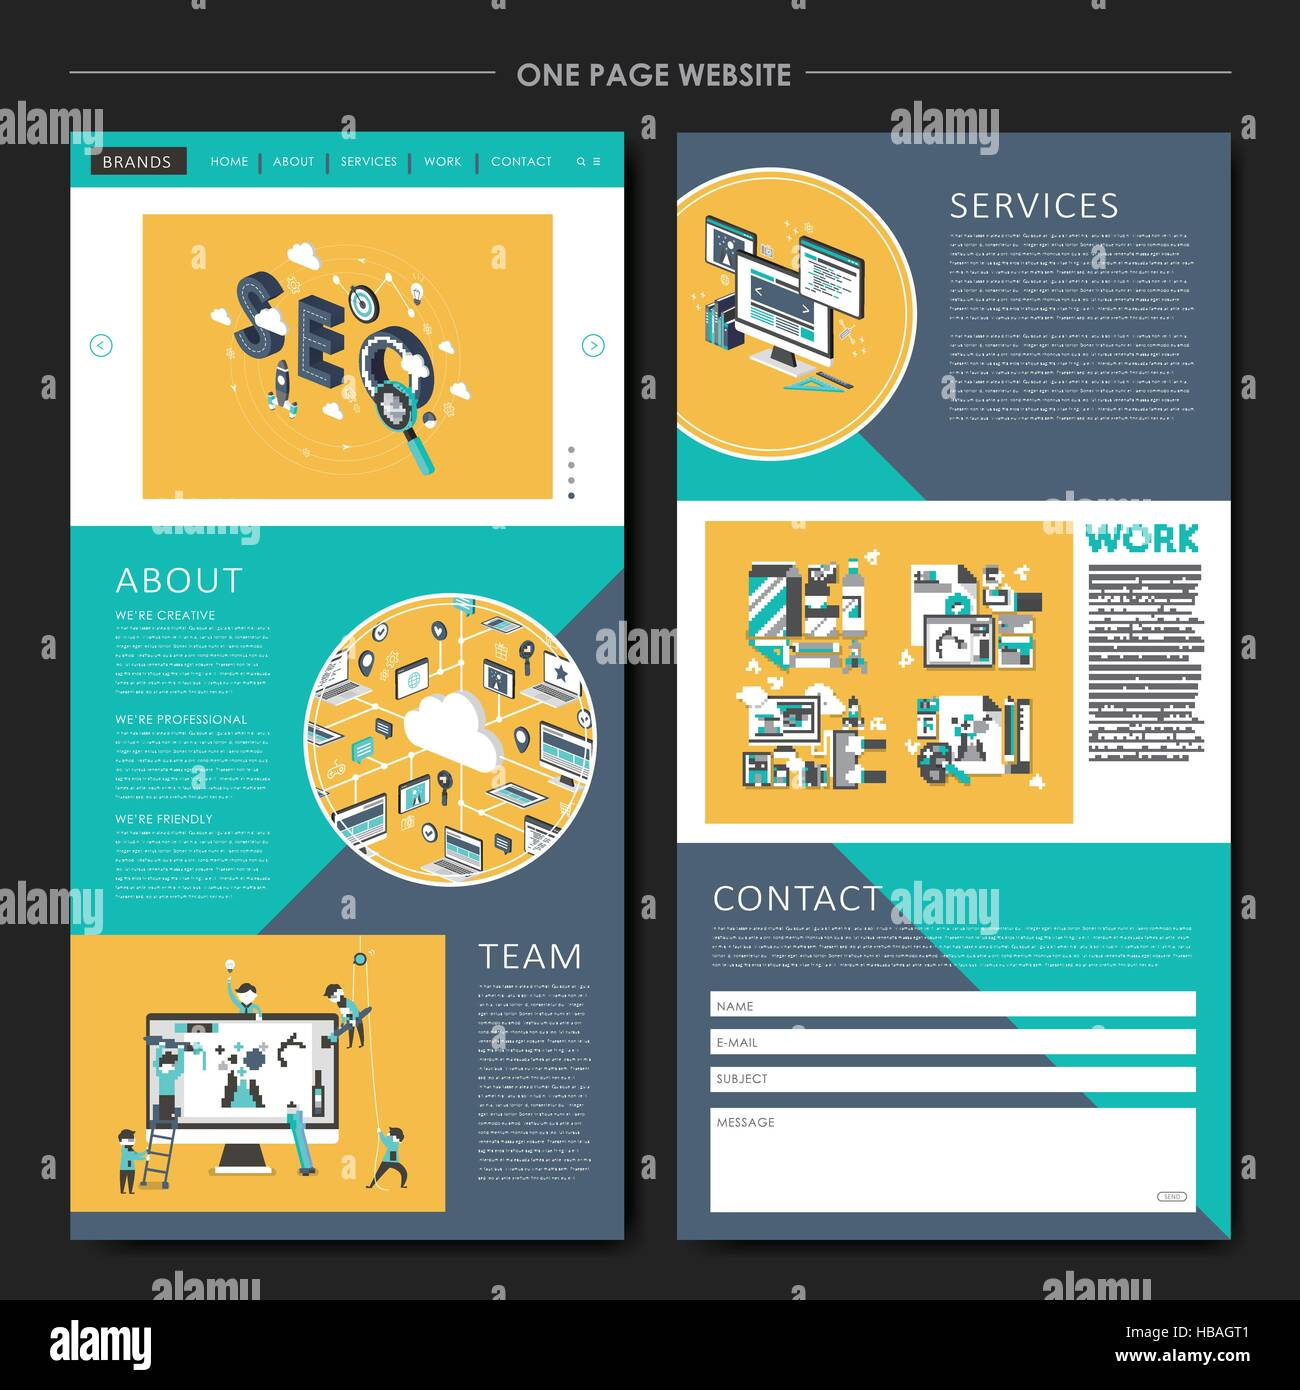 Business concept one page website design template in flat style business concept one page website design template in flat style cheaphphosting